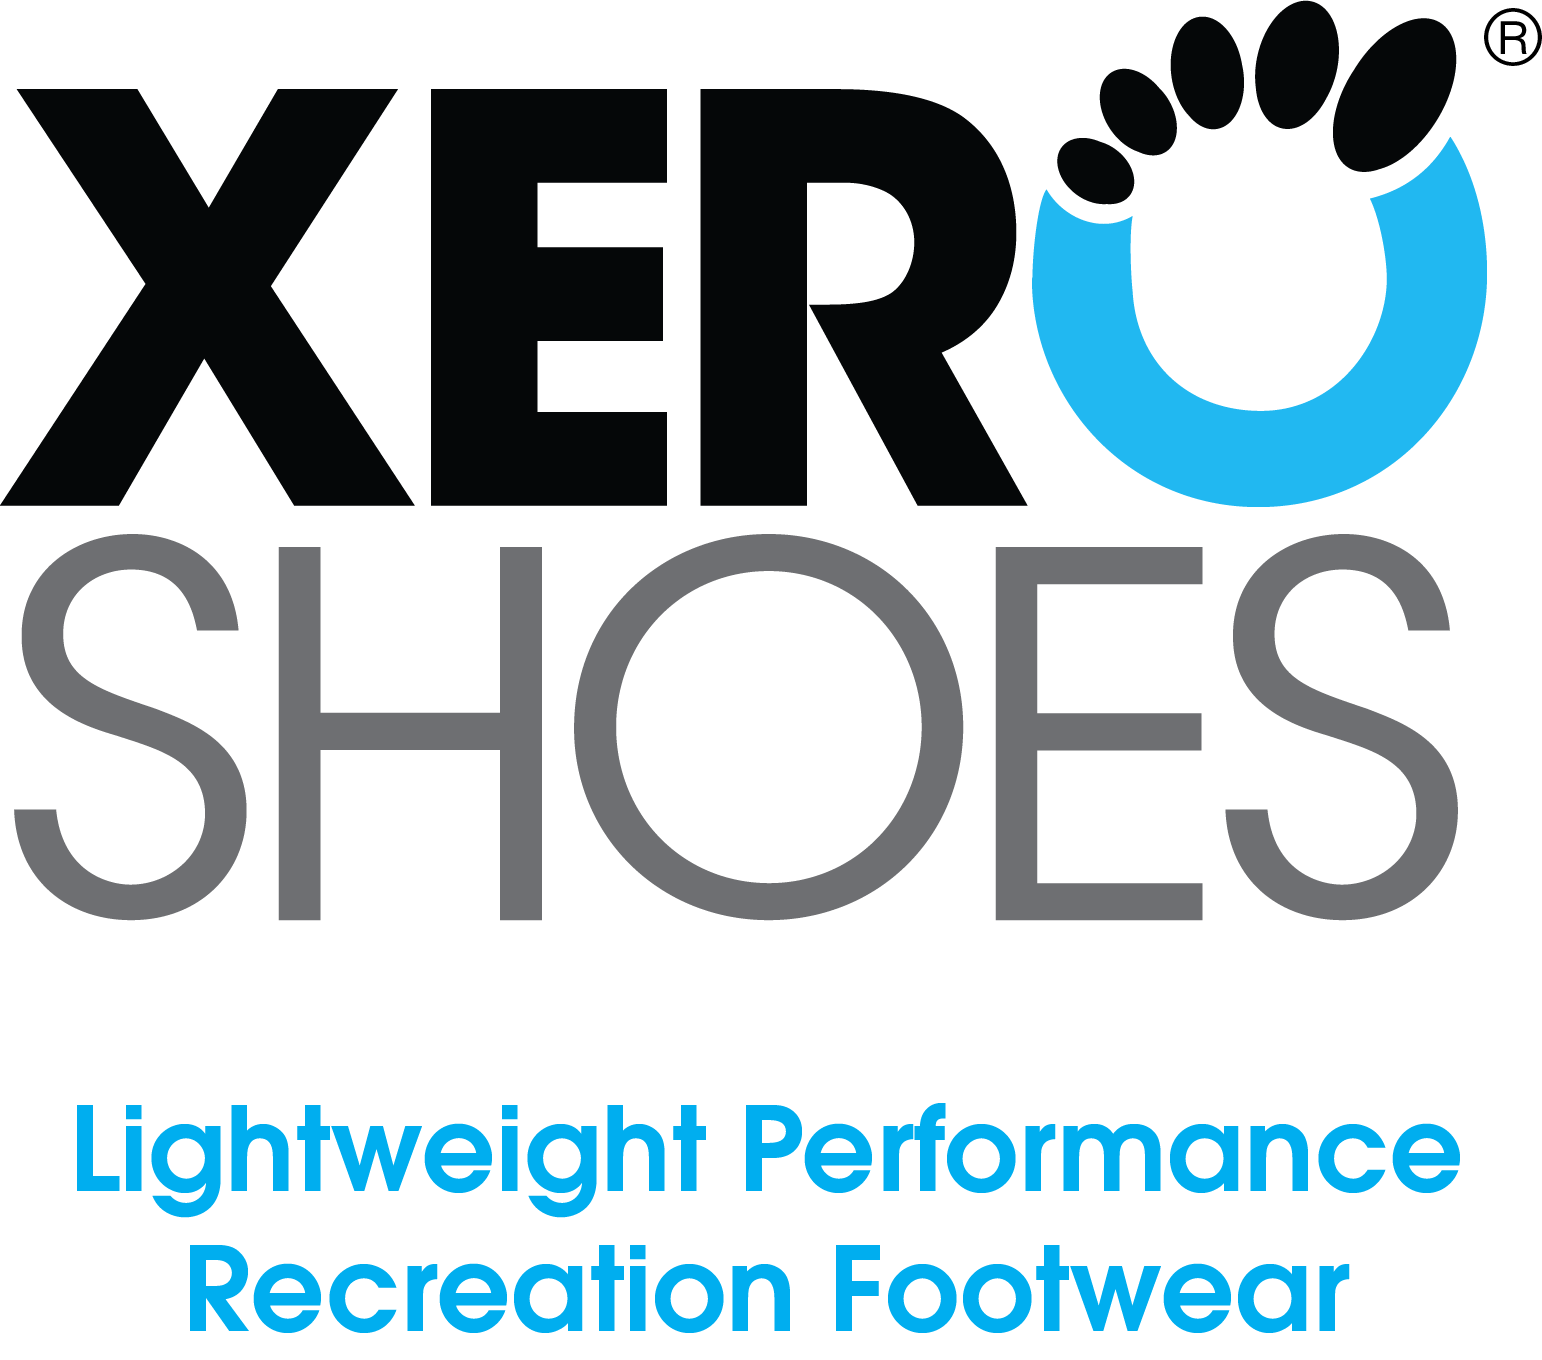 XeroShoes-Words-and-Logo-Square